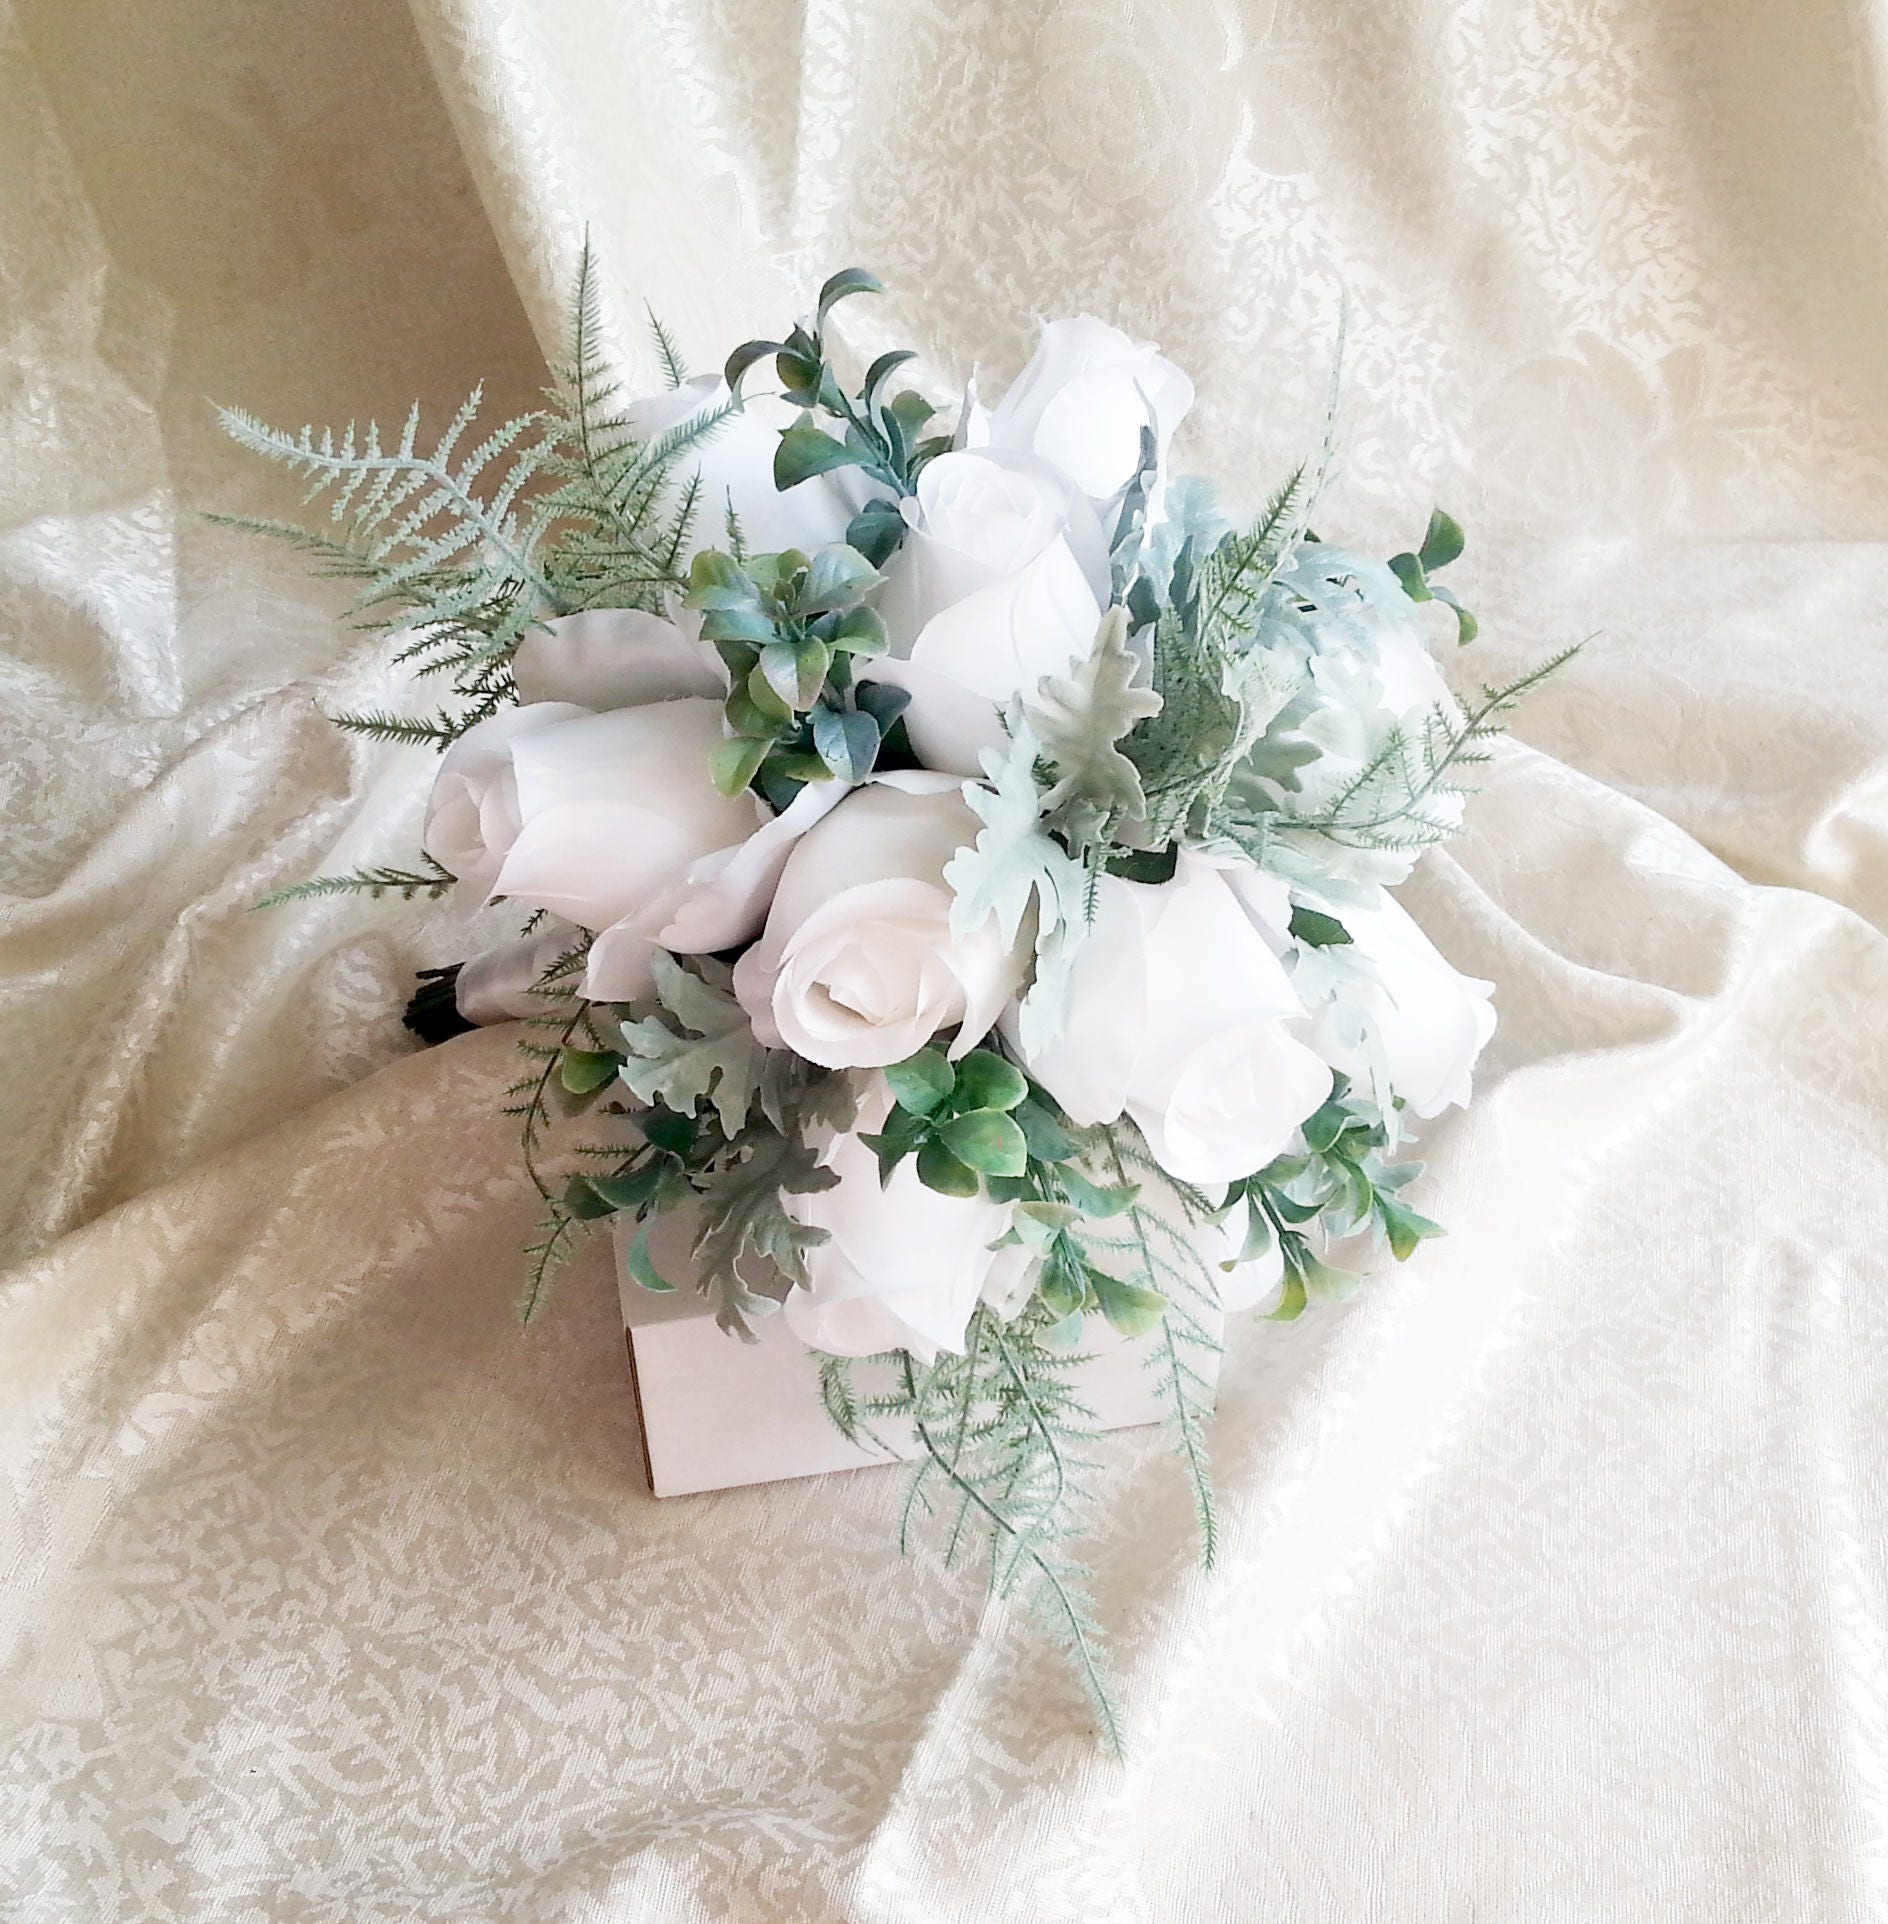 White roses dusty miller wedding bouquet frosted greenery fern ...